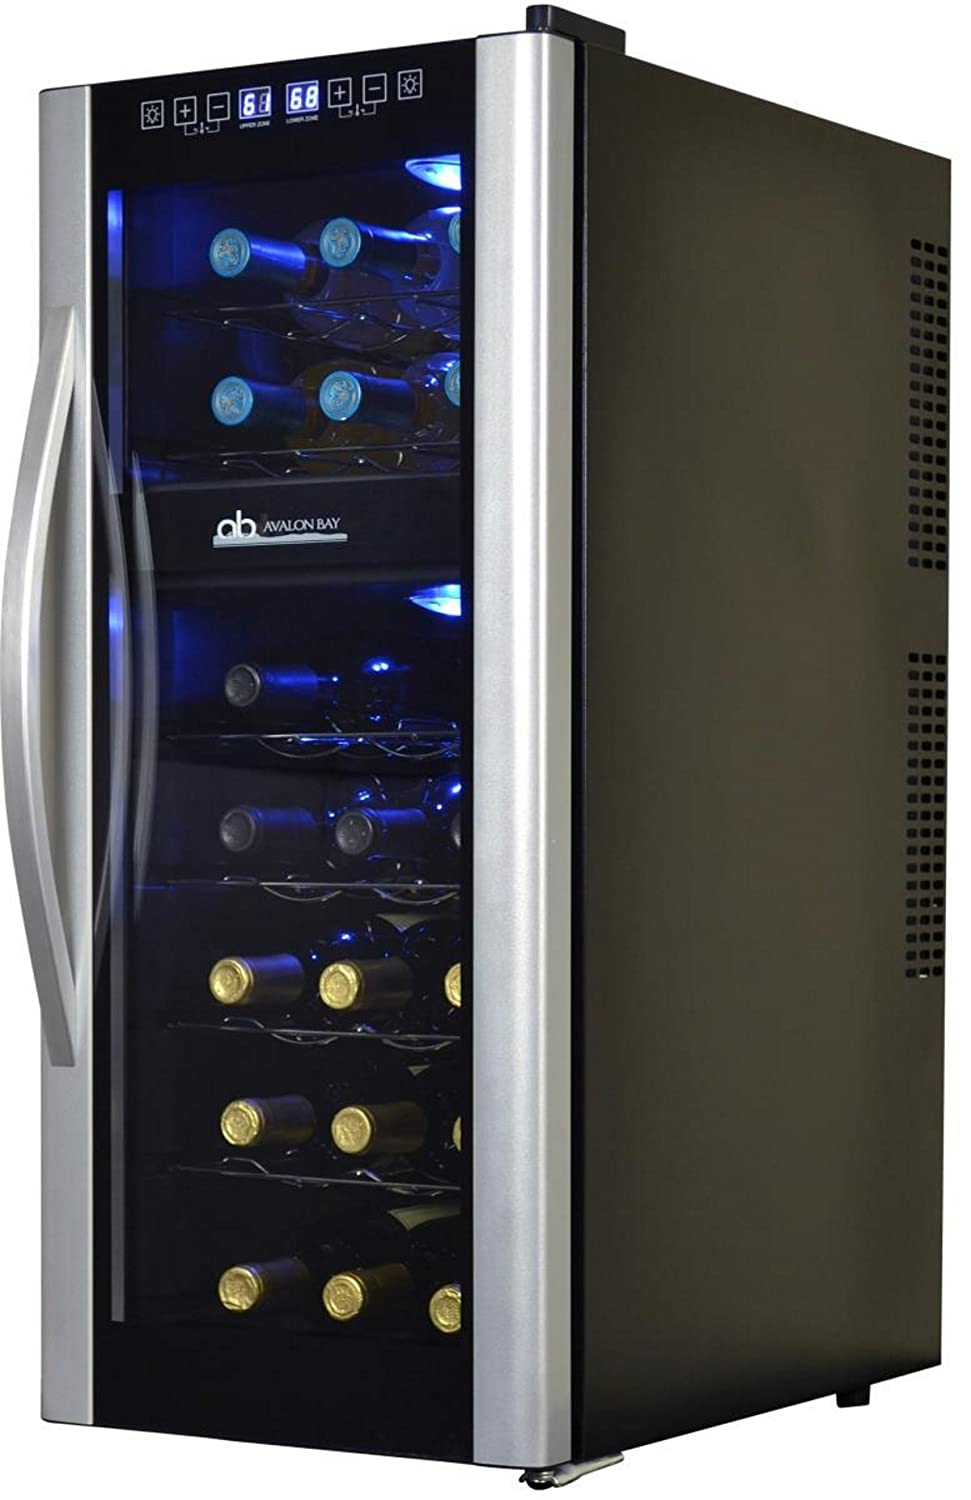 Avalon Bay AB-WINE21DS 21 Bottle Dual Zone Wine Cooler NewAir